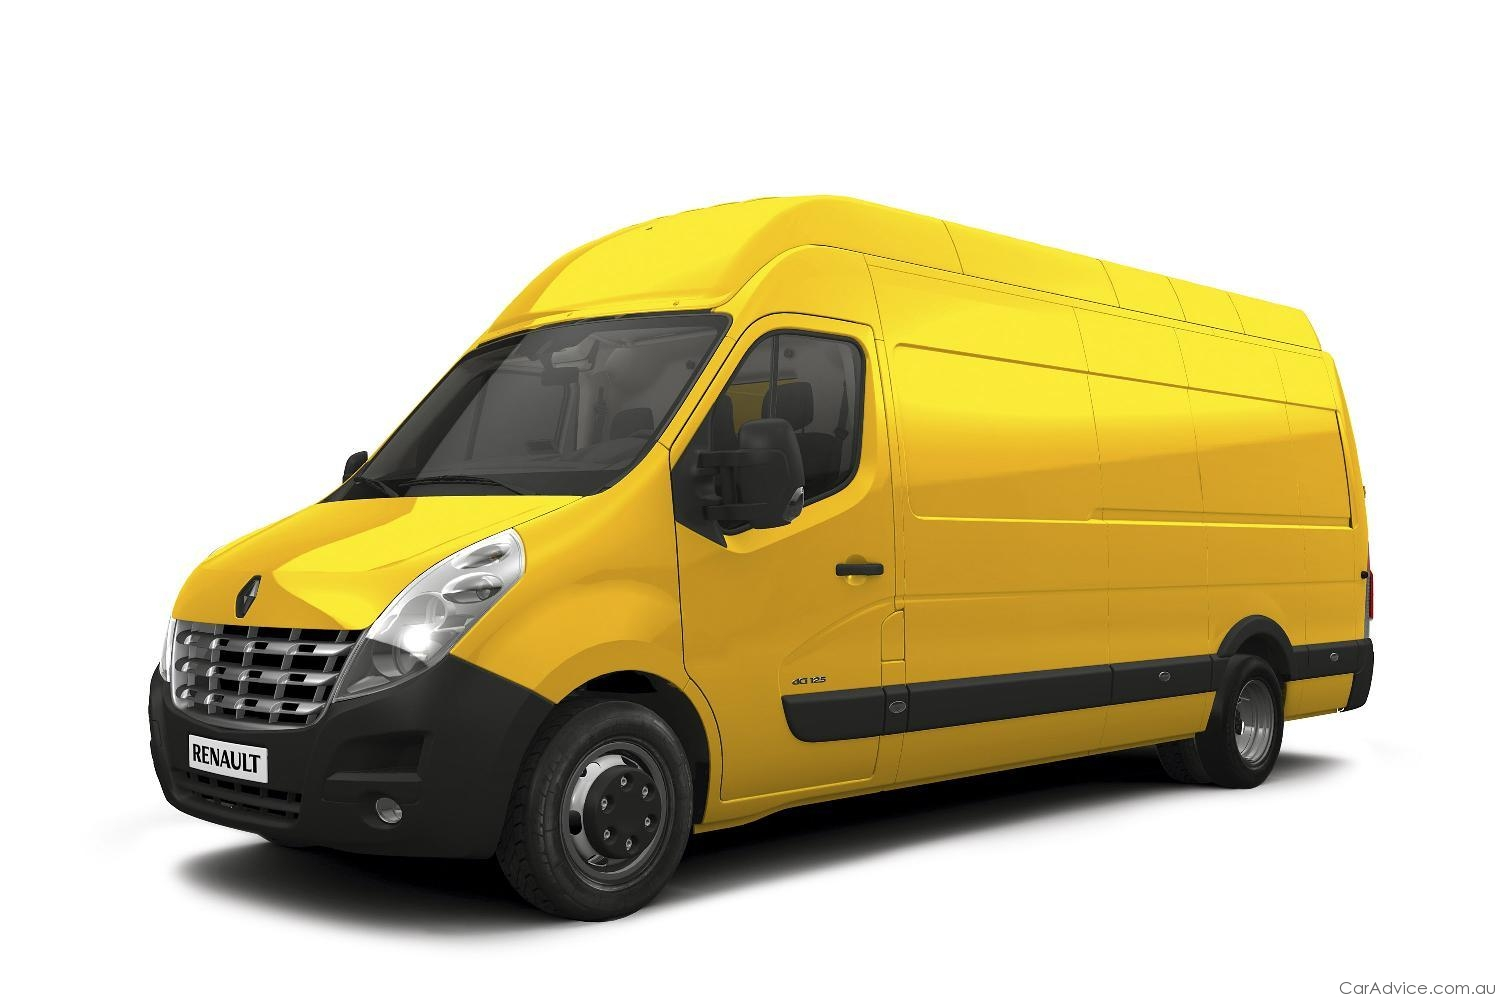 renault master renault trafic and renault kangoo van ranges all updated photos. Black Bedroom Furniture Sets. Home Design Ideas